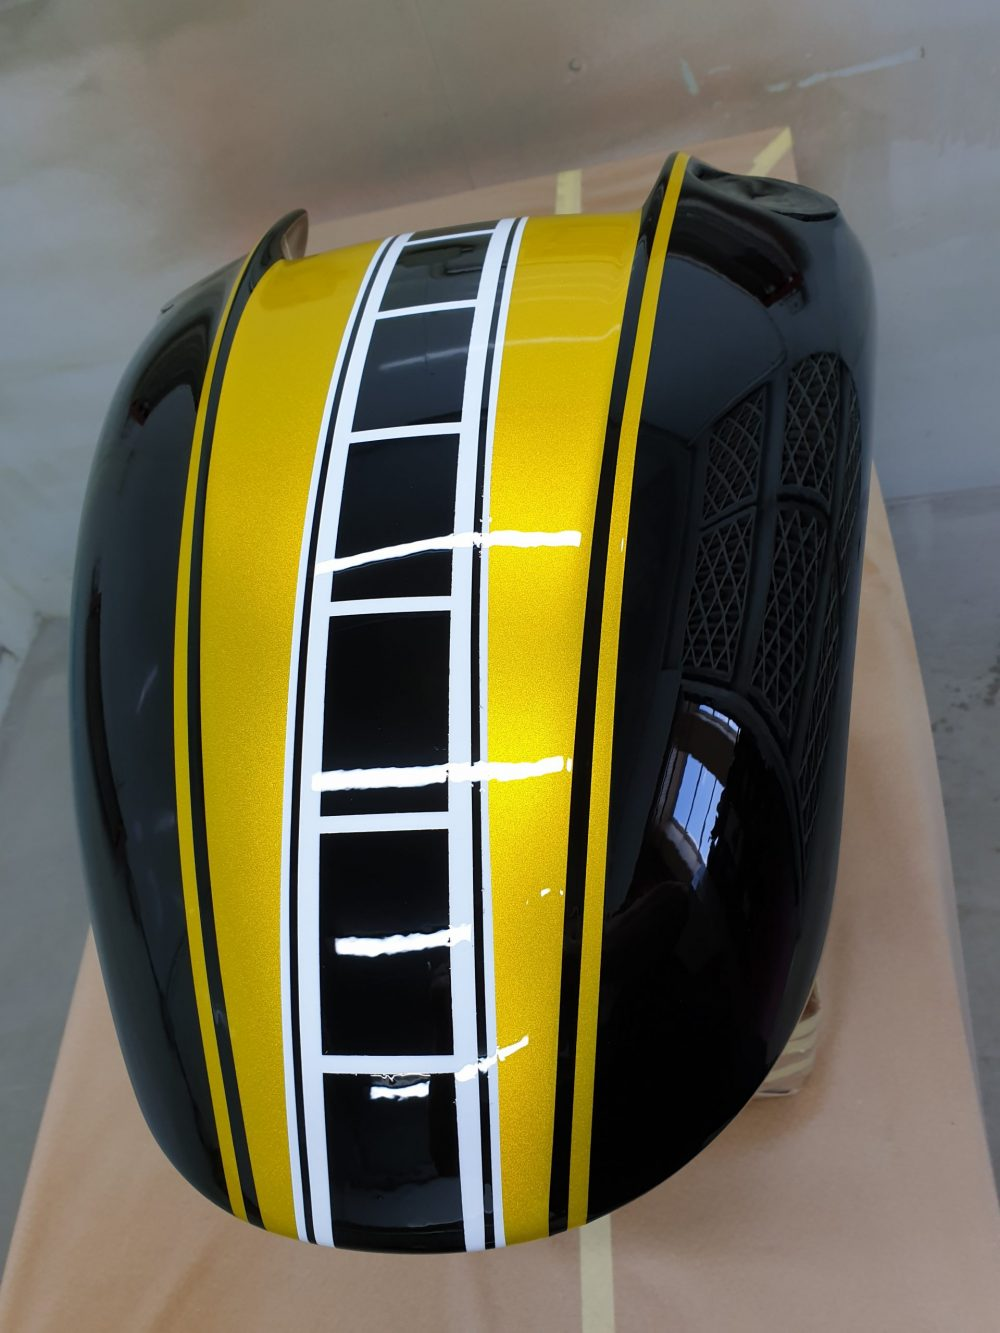 Our take on the vmax anniversary paint work using BUMBLE BEE CANDY YELLOW, BLACK & WHITE GROUND COATS